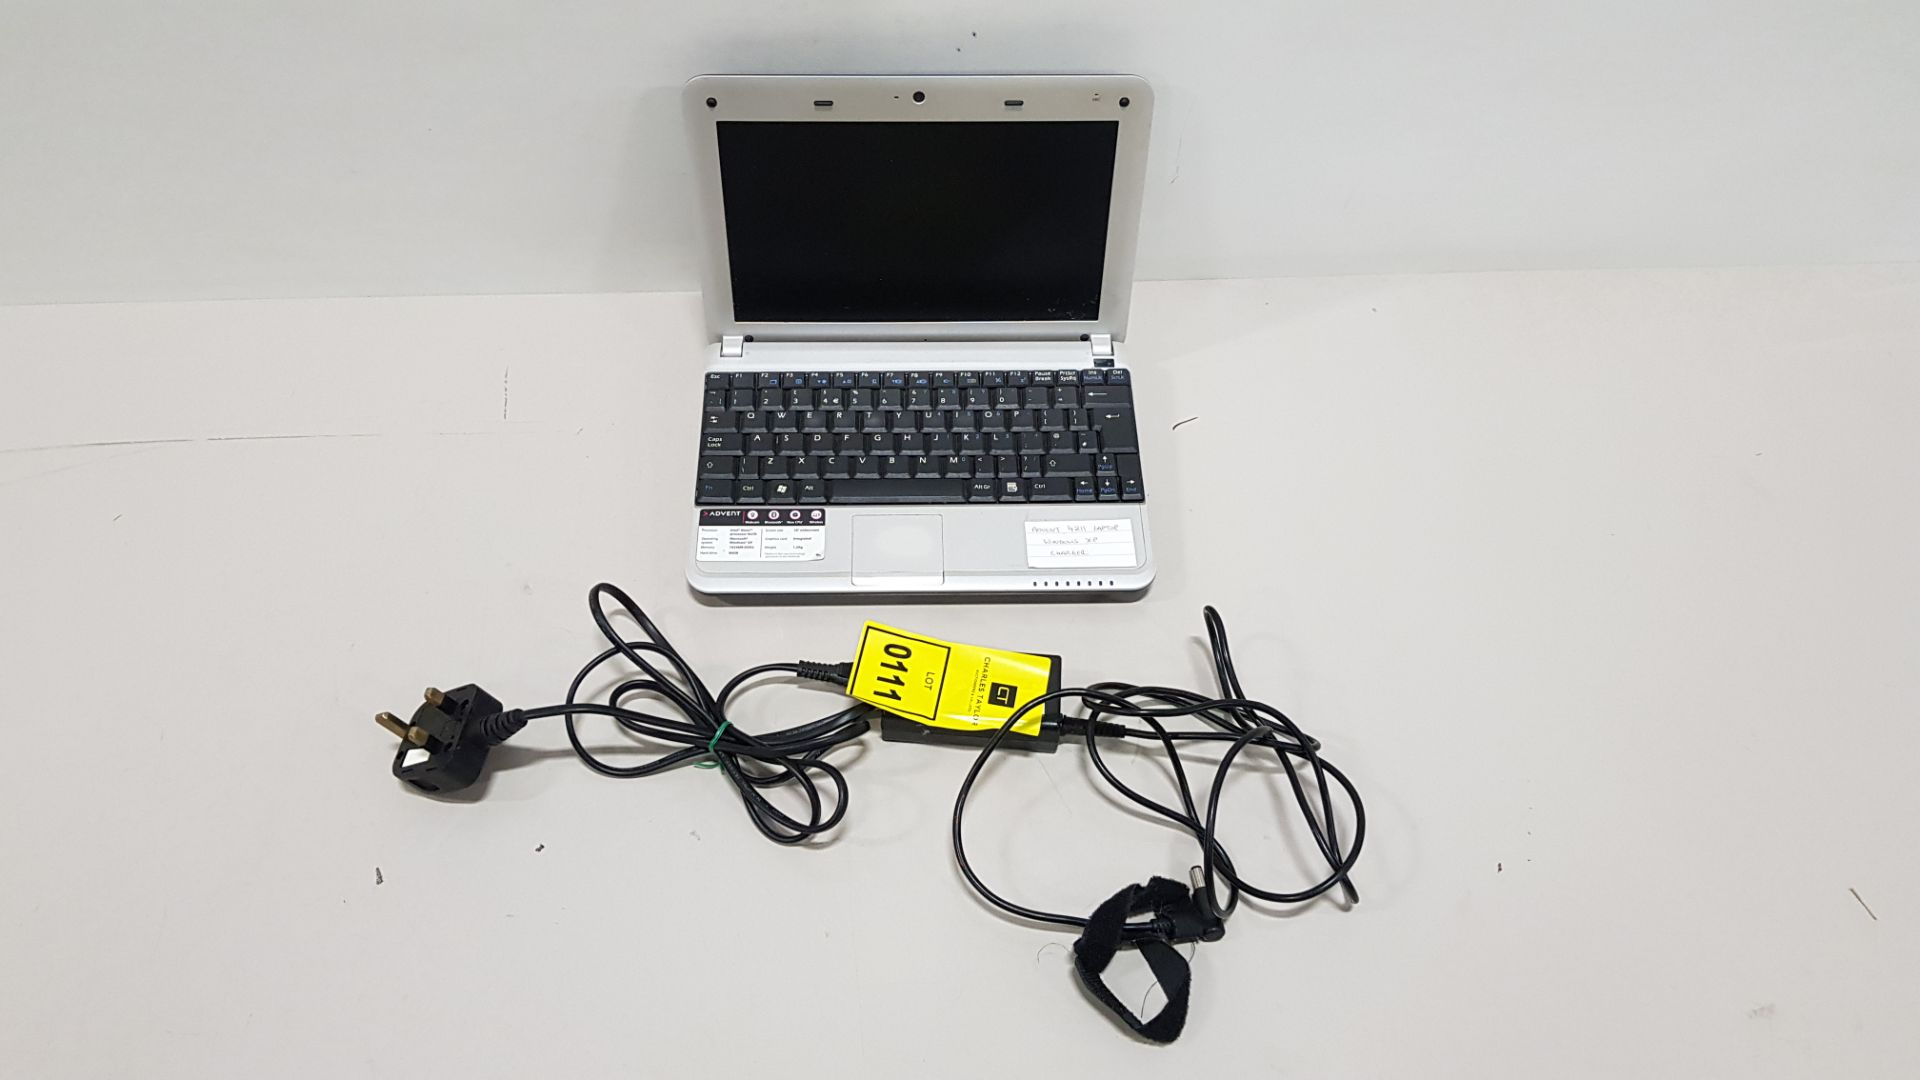 ADVENT 4211 LAPTOP WINDOWS XP - WITH CHARGER